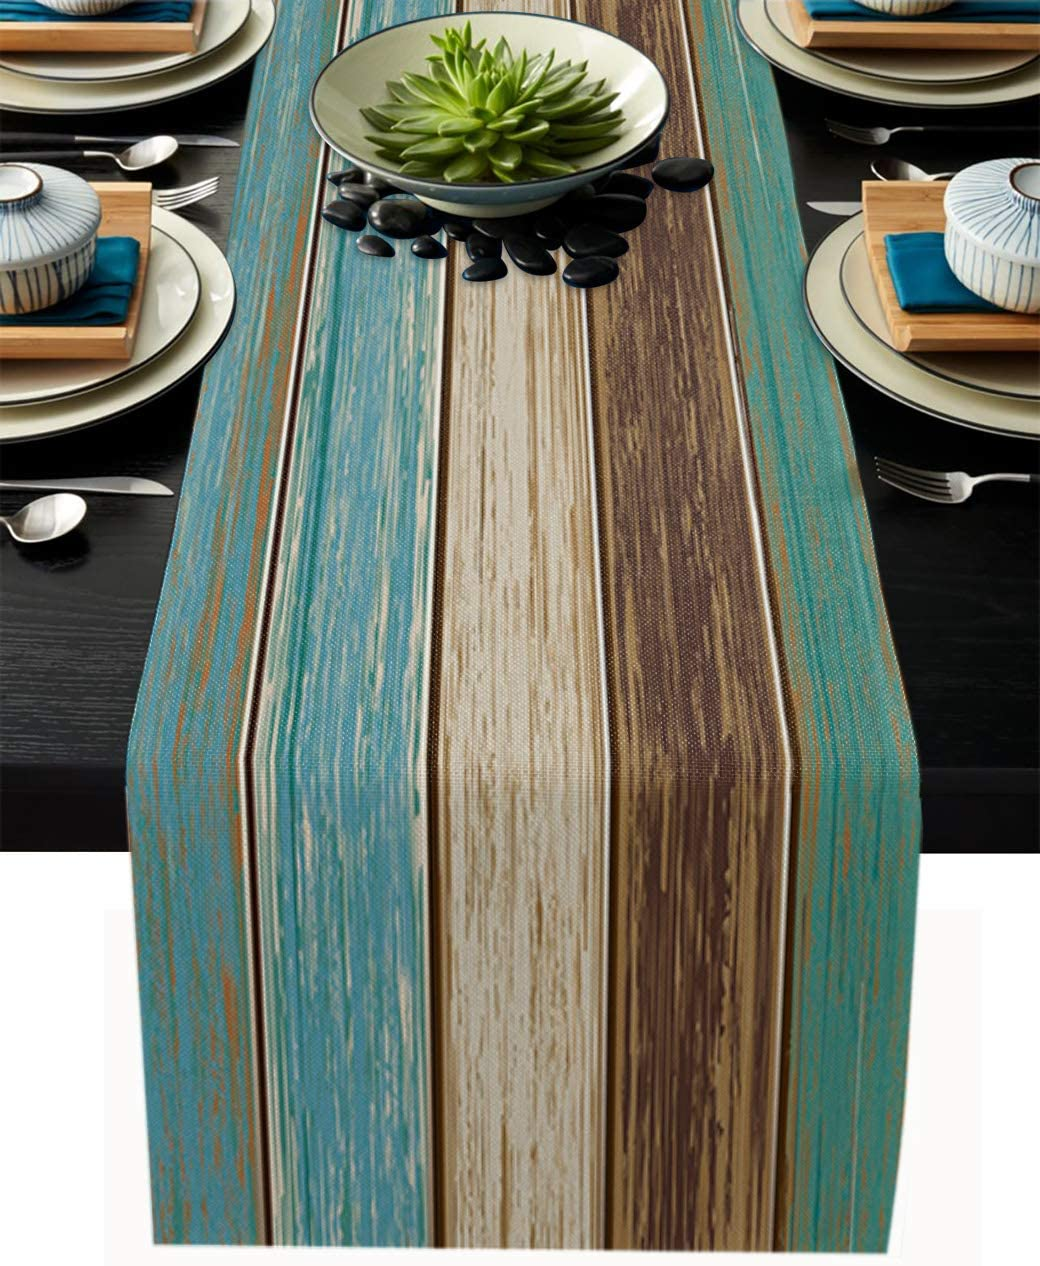 Homeinn Farmhouse Table Runner Dresser Scarves for Kitchen Dining Party Decor, Retro Rustic Barn Wood Brown and Blue Green Burlap Linen Tabletop Cover for Indoor Outdoor Tables Use - 13